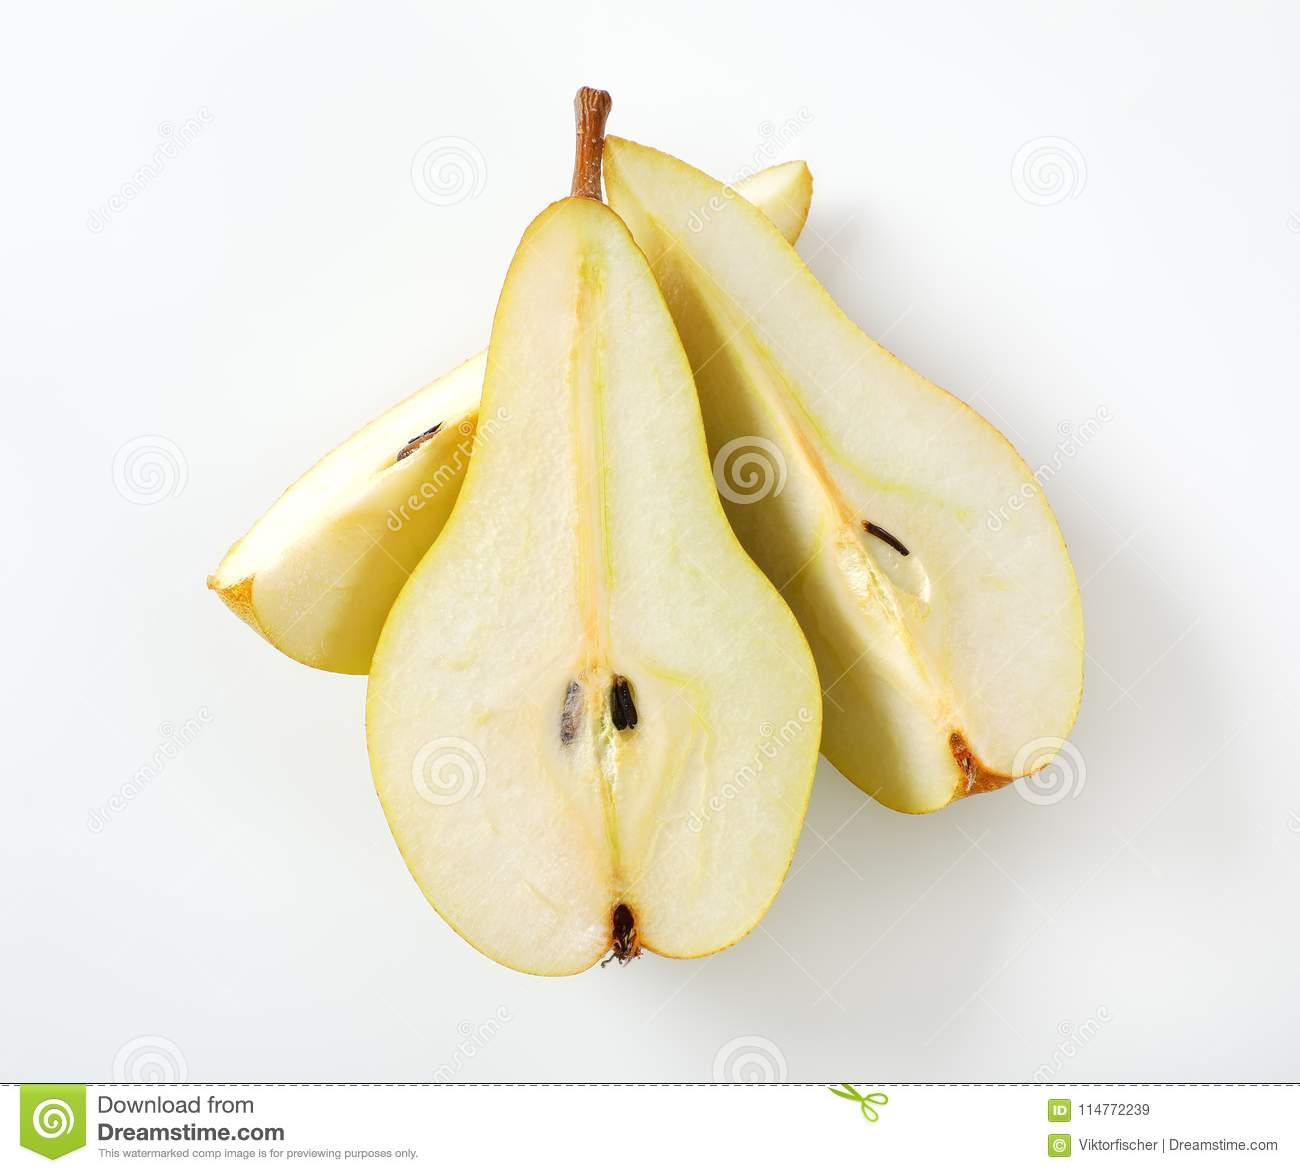 Sliced yellow pear